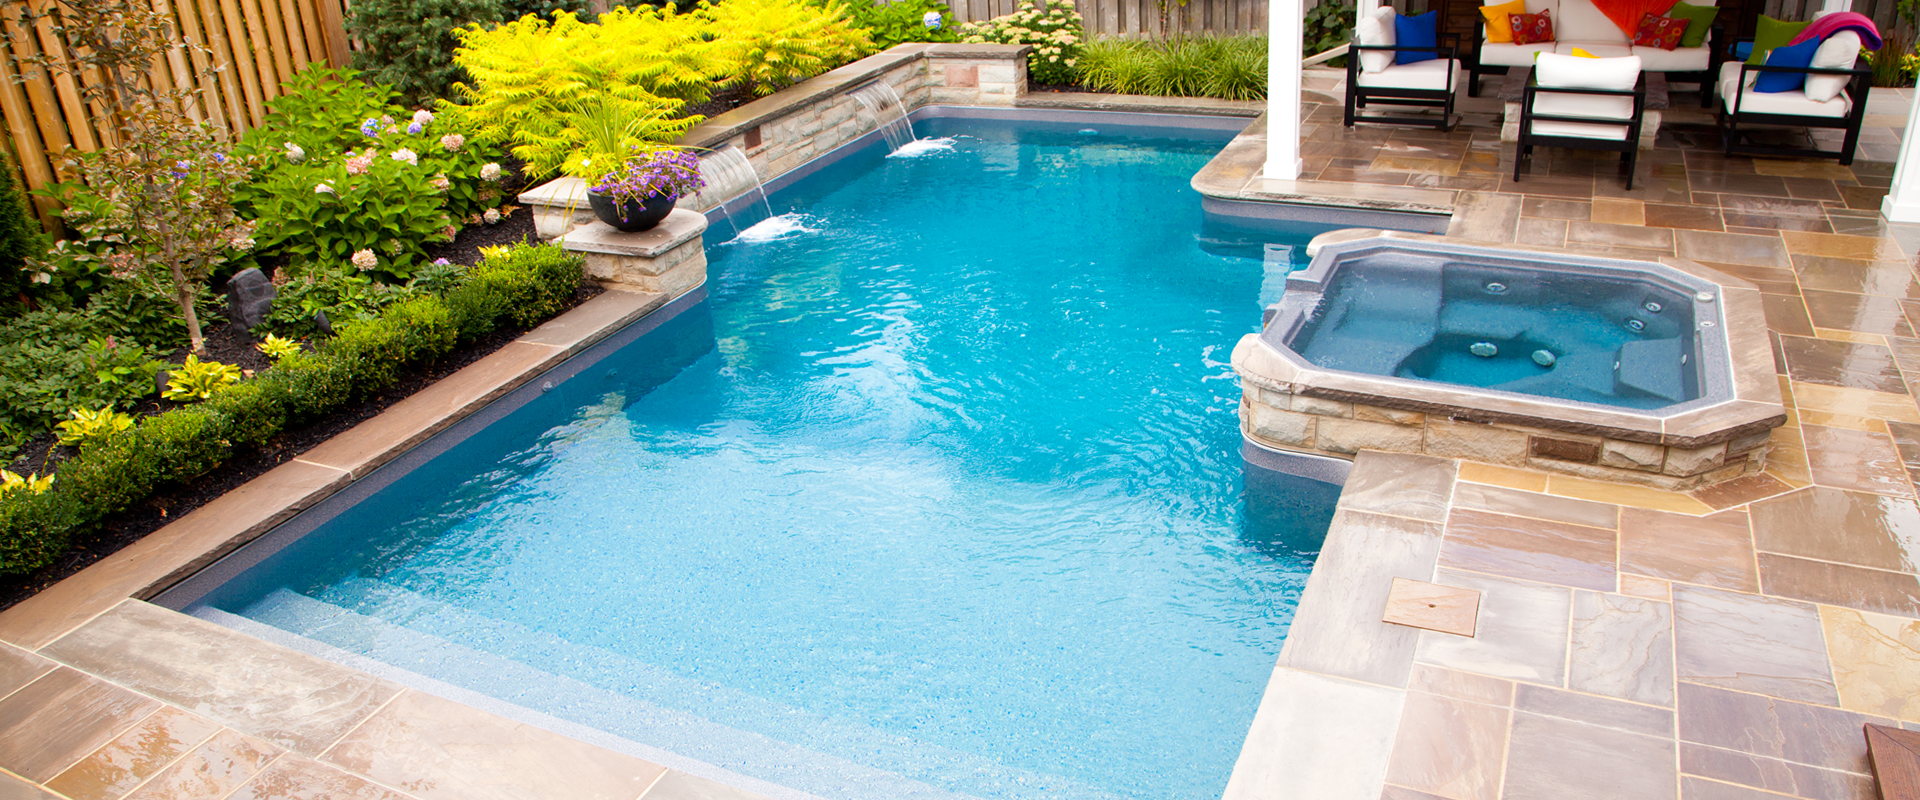 Inground Onground And Above Ground Pools Boldt Pools